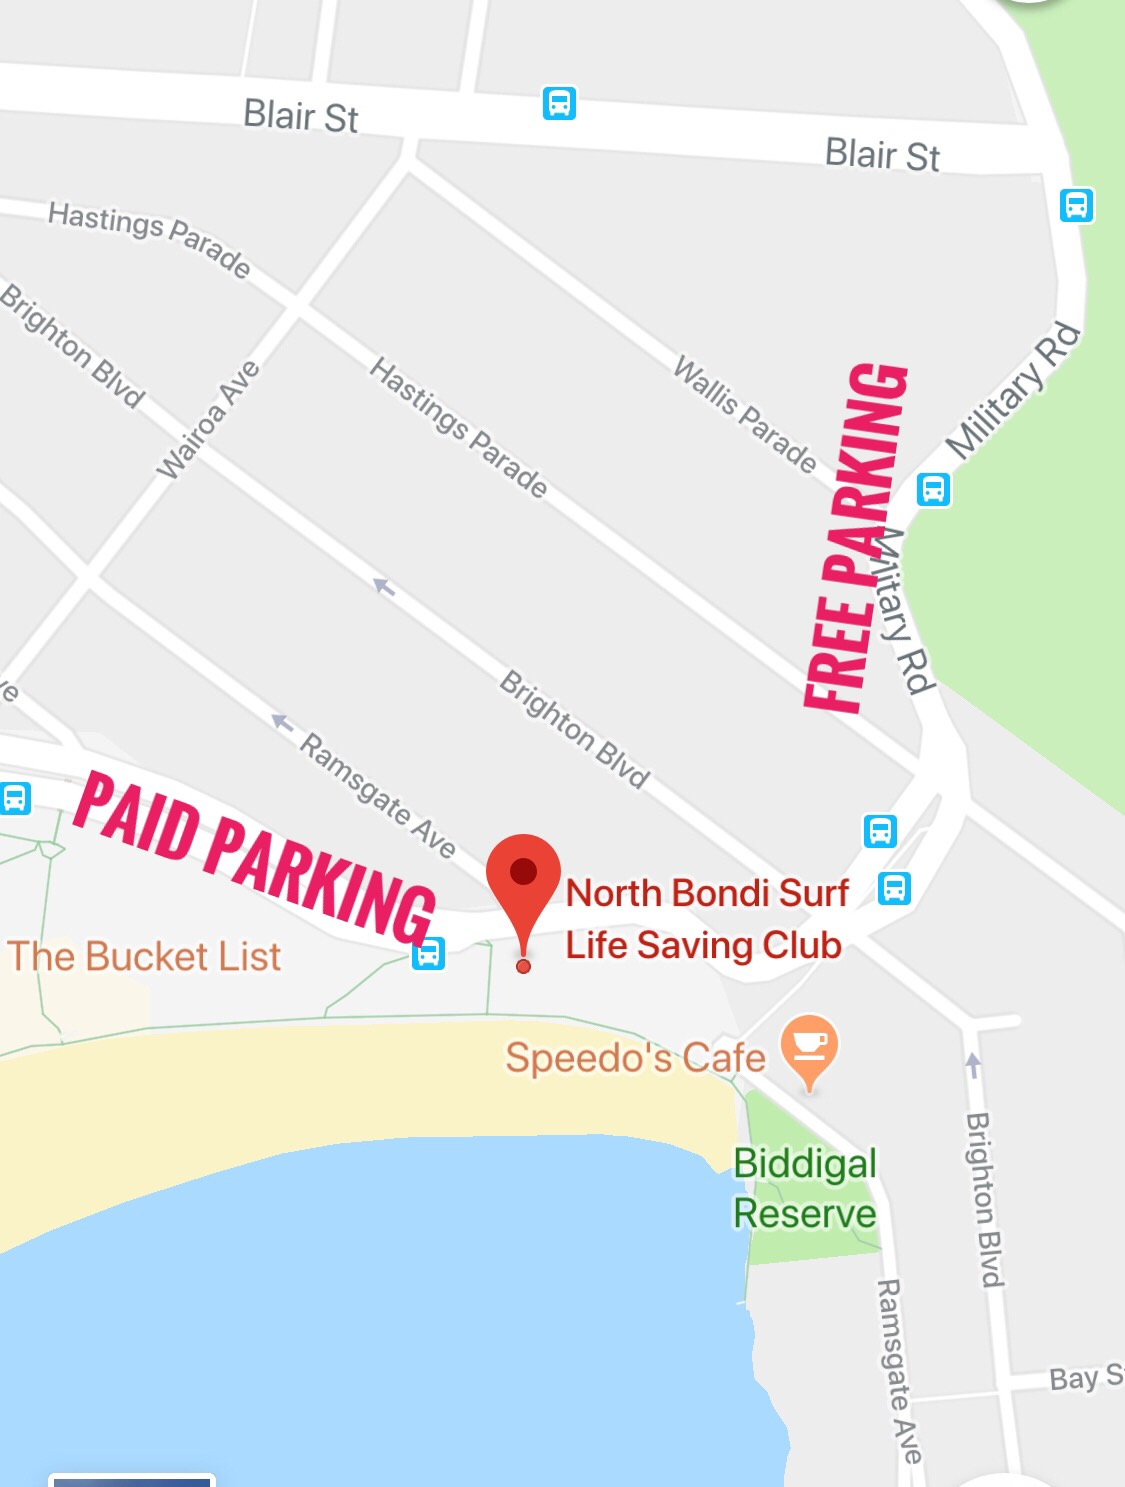 Meet beach side North Bondi Surf Club  Please leave time to allow for parking!